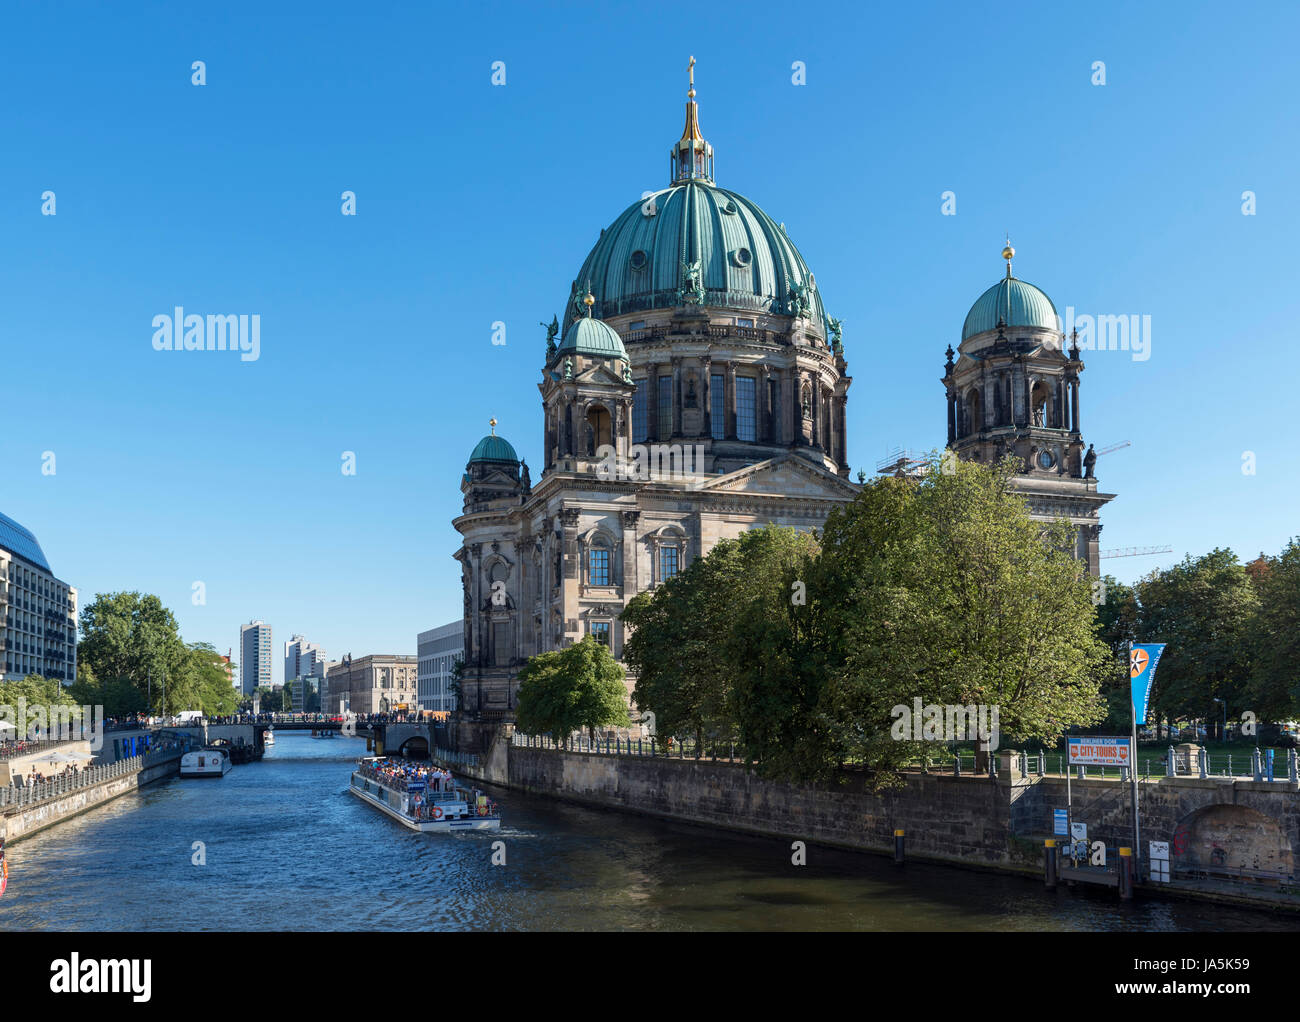 Berliner Dom (Berlin Cathedral) on Museum Island (Museuminsel), Mitte, Berlin, Germany - Stock Image